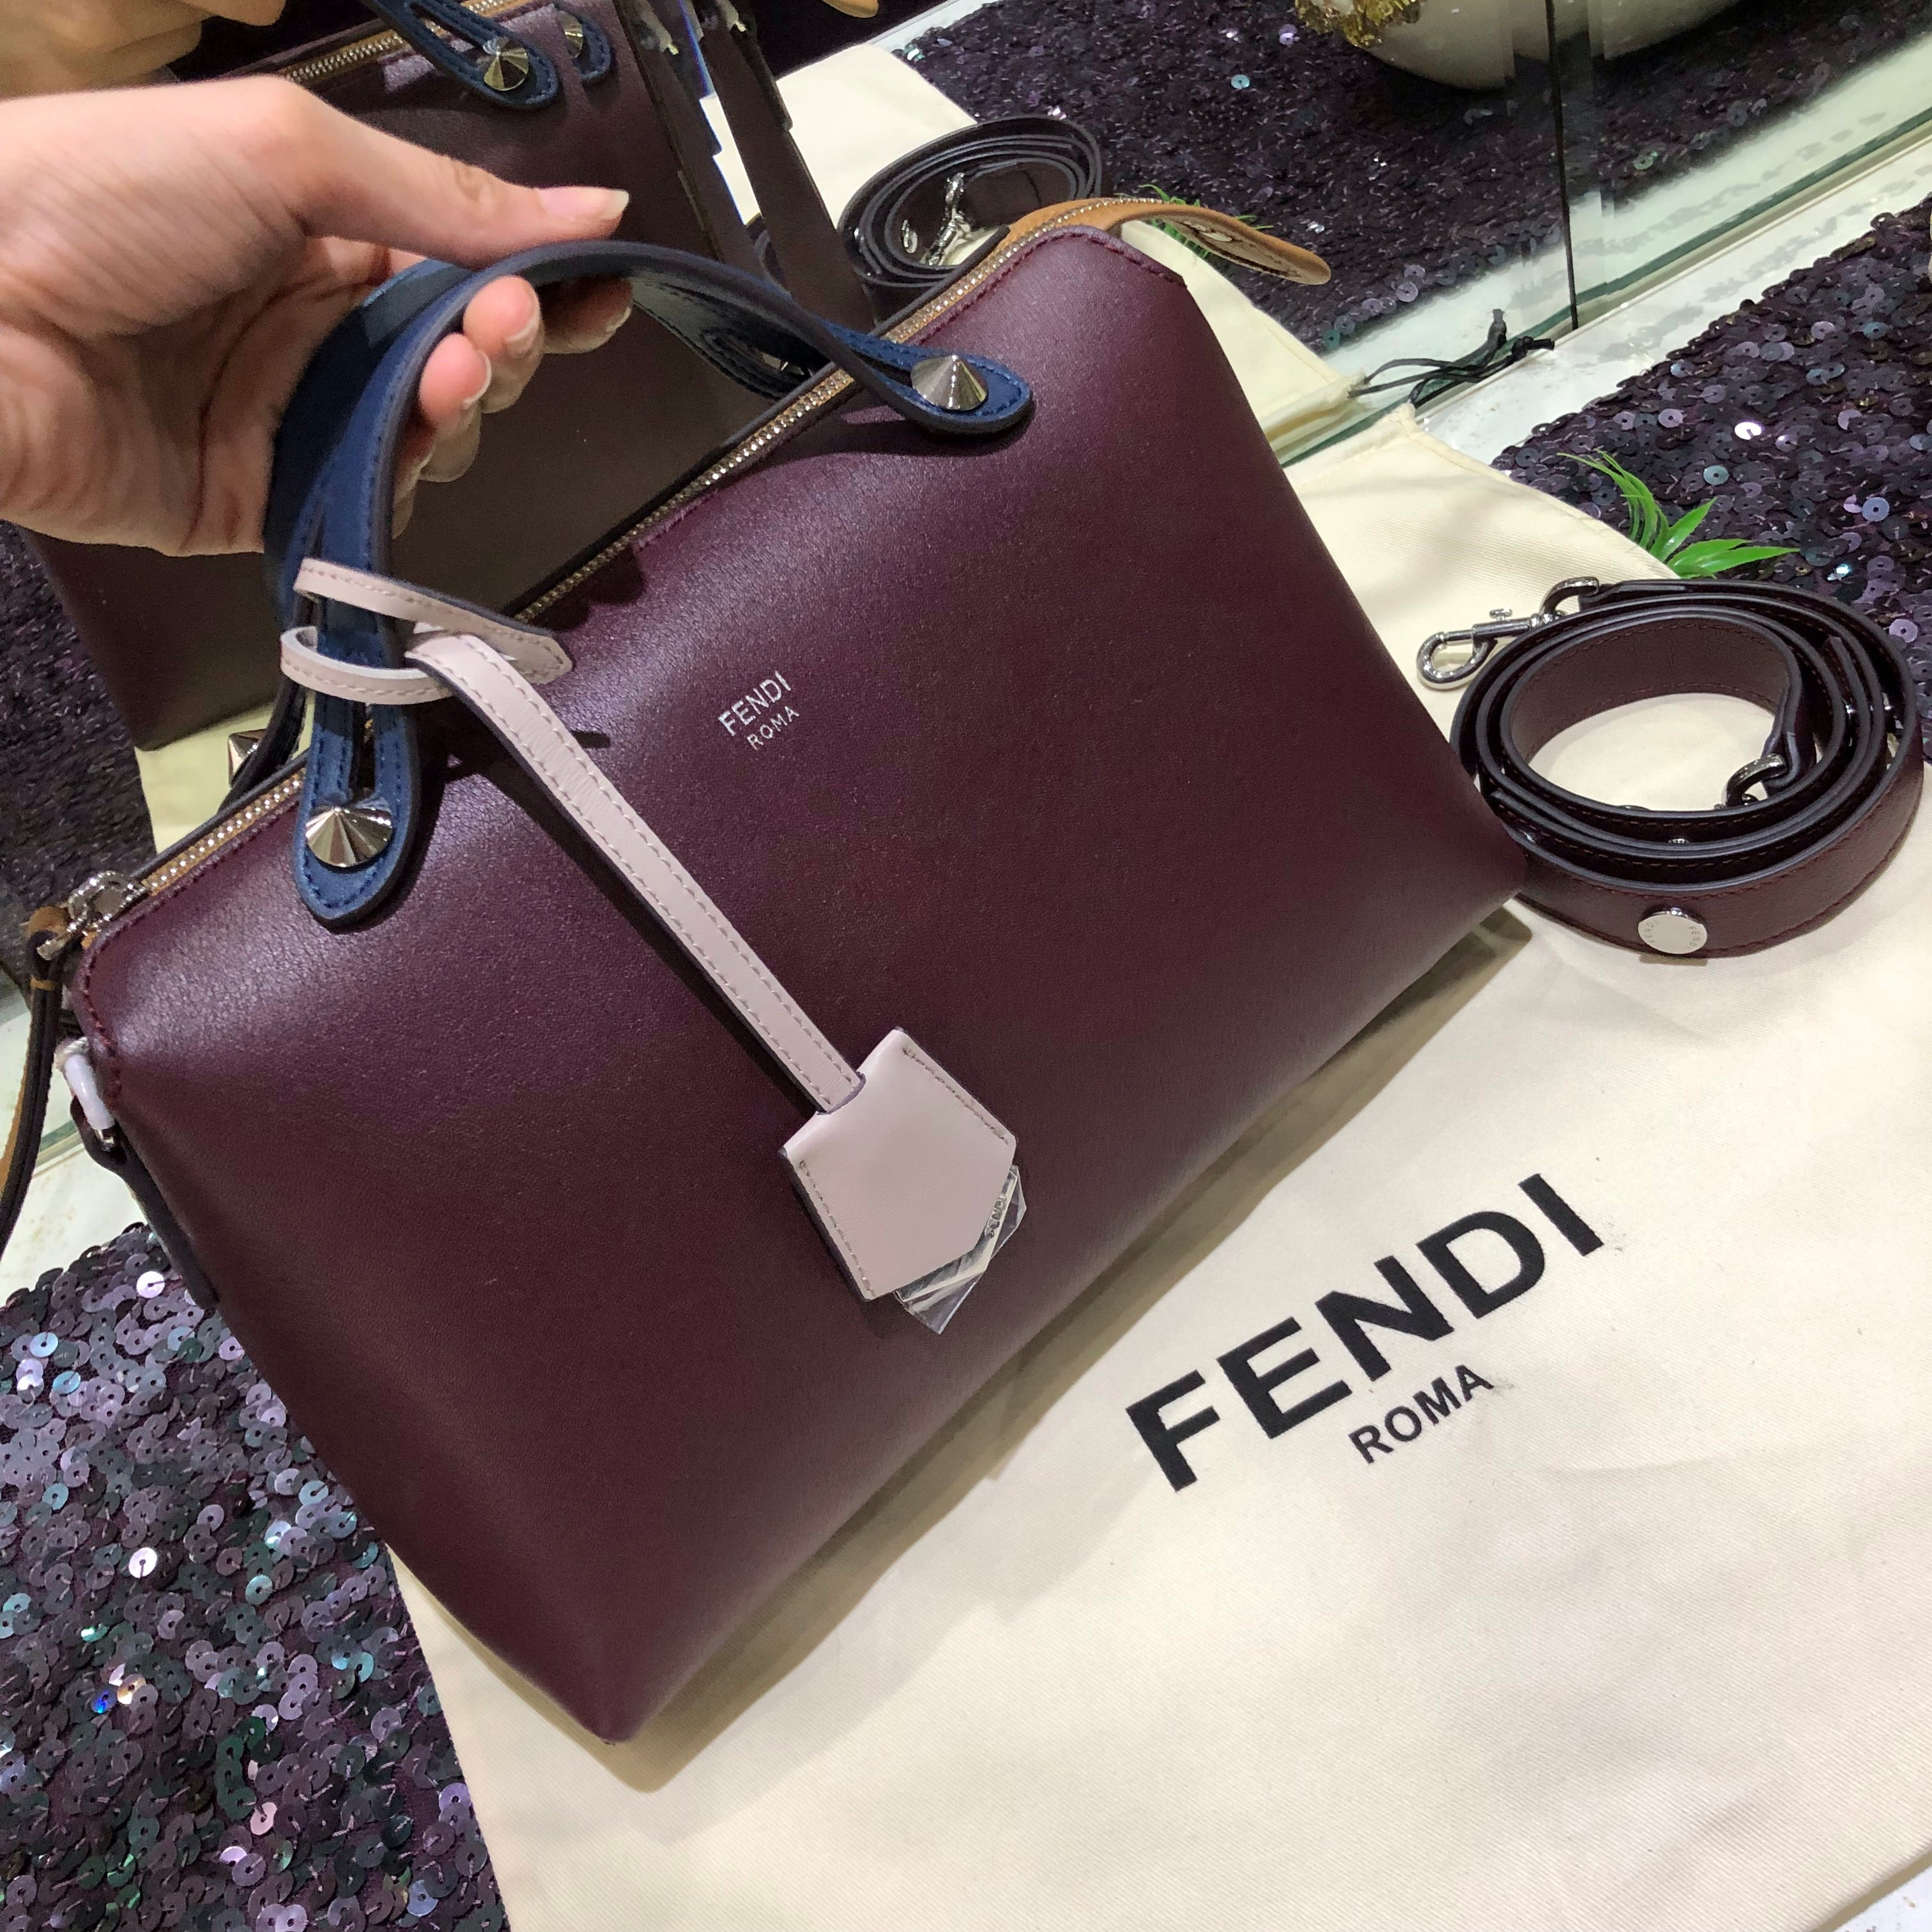 FENDI BY THE WAY SMALL - vlixcogoods